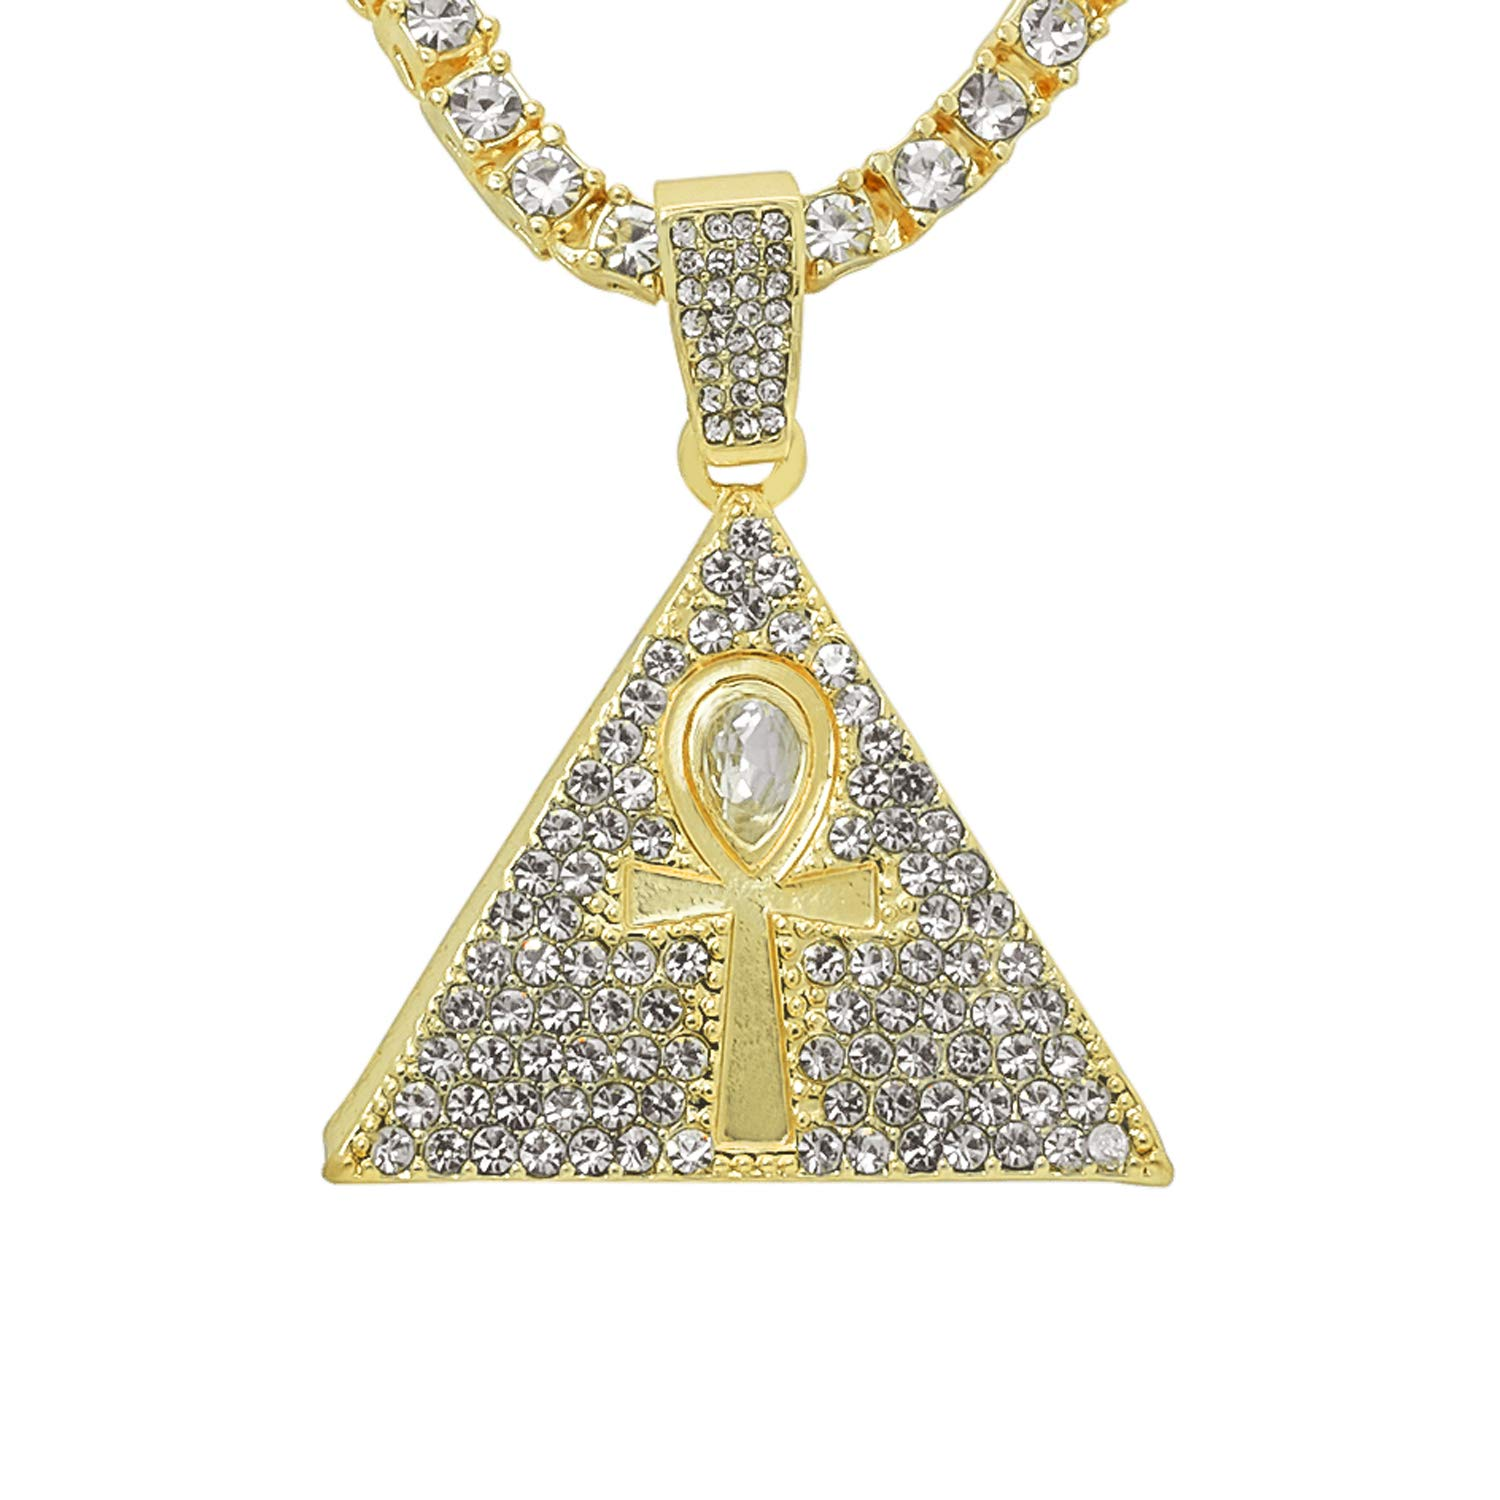 Gold-Tone Iced Out Hip Hop Bling Pyramid and Ankh Cross Pendant with 24 Tennis Chain and 24 Rope Chain